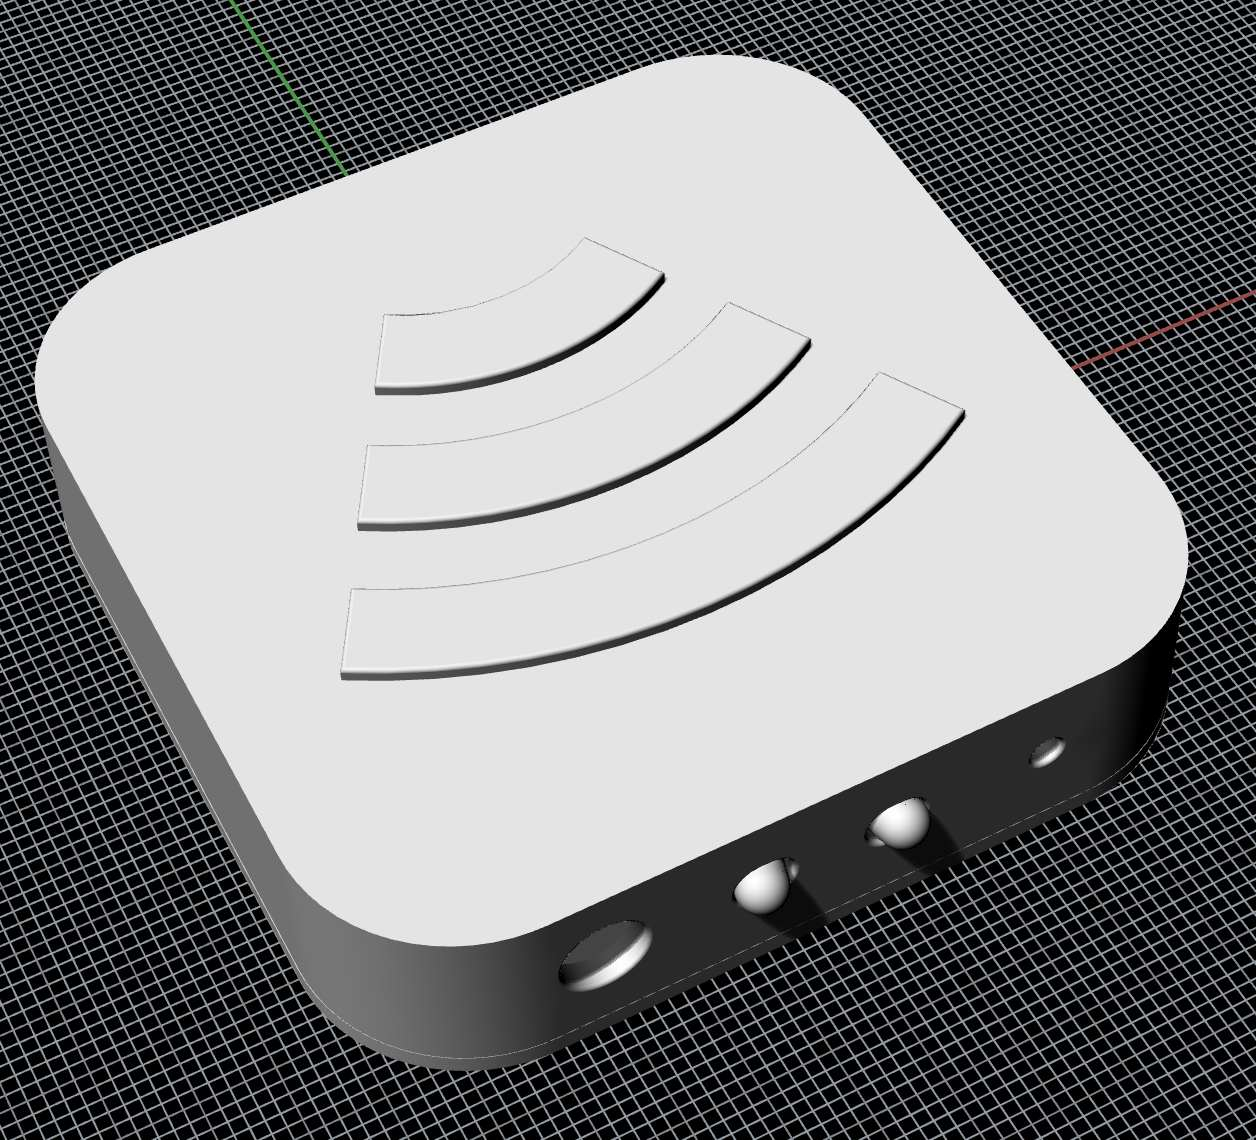 IRKit - Open Source WiFi Connected Infrared Remote Controller